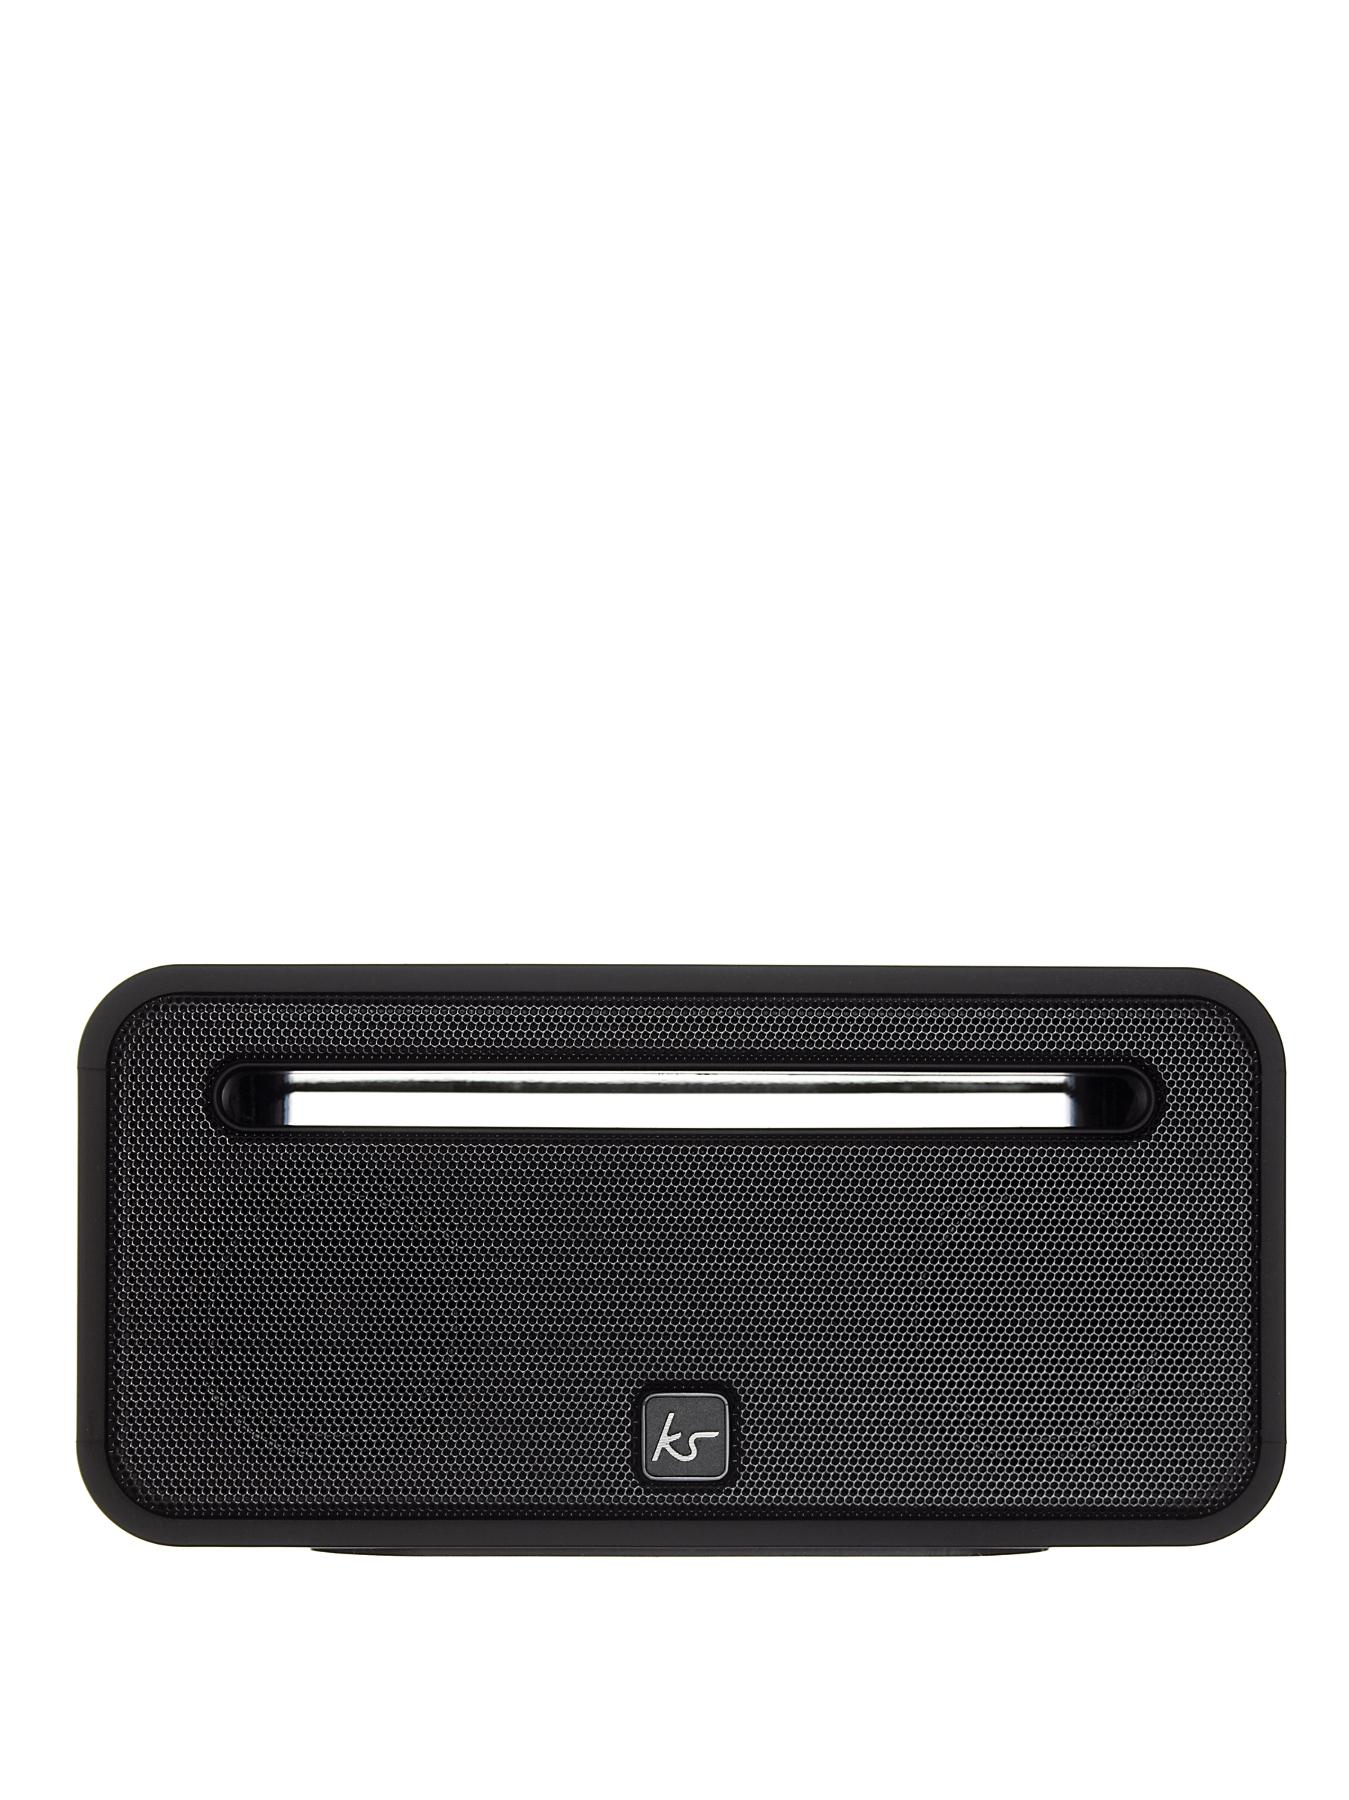 Kitsound Ignite Rechargeable Bluetooth Speaker - Black